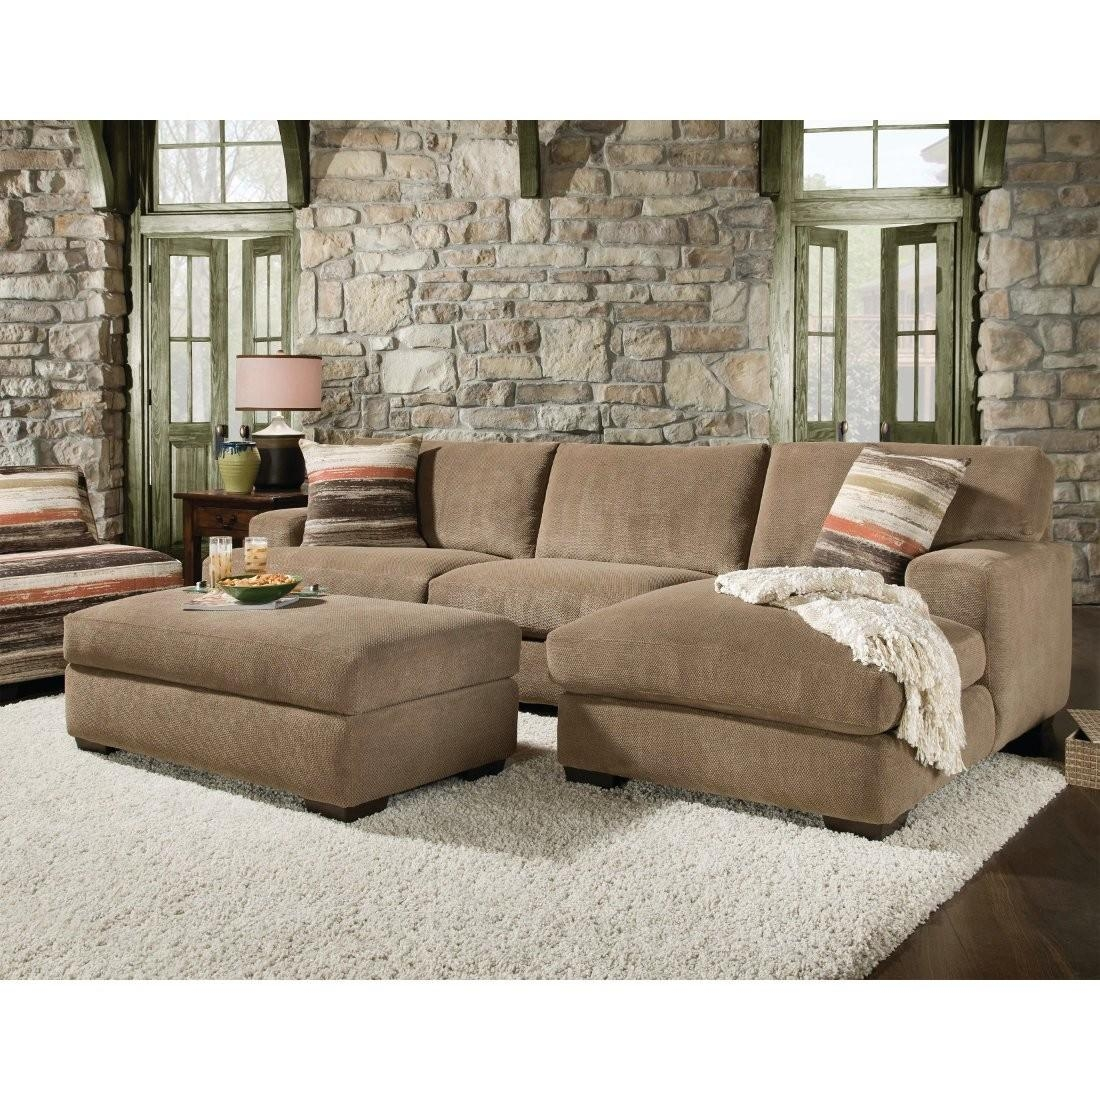 Furniture: Microfiber Chaise Lounge For Comfortable Sofa Design Inside Sofas And Chaises Lounge Sets (Image 12 of 20)